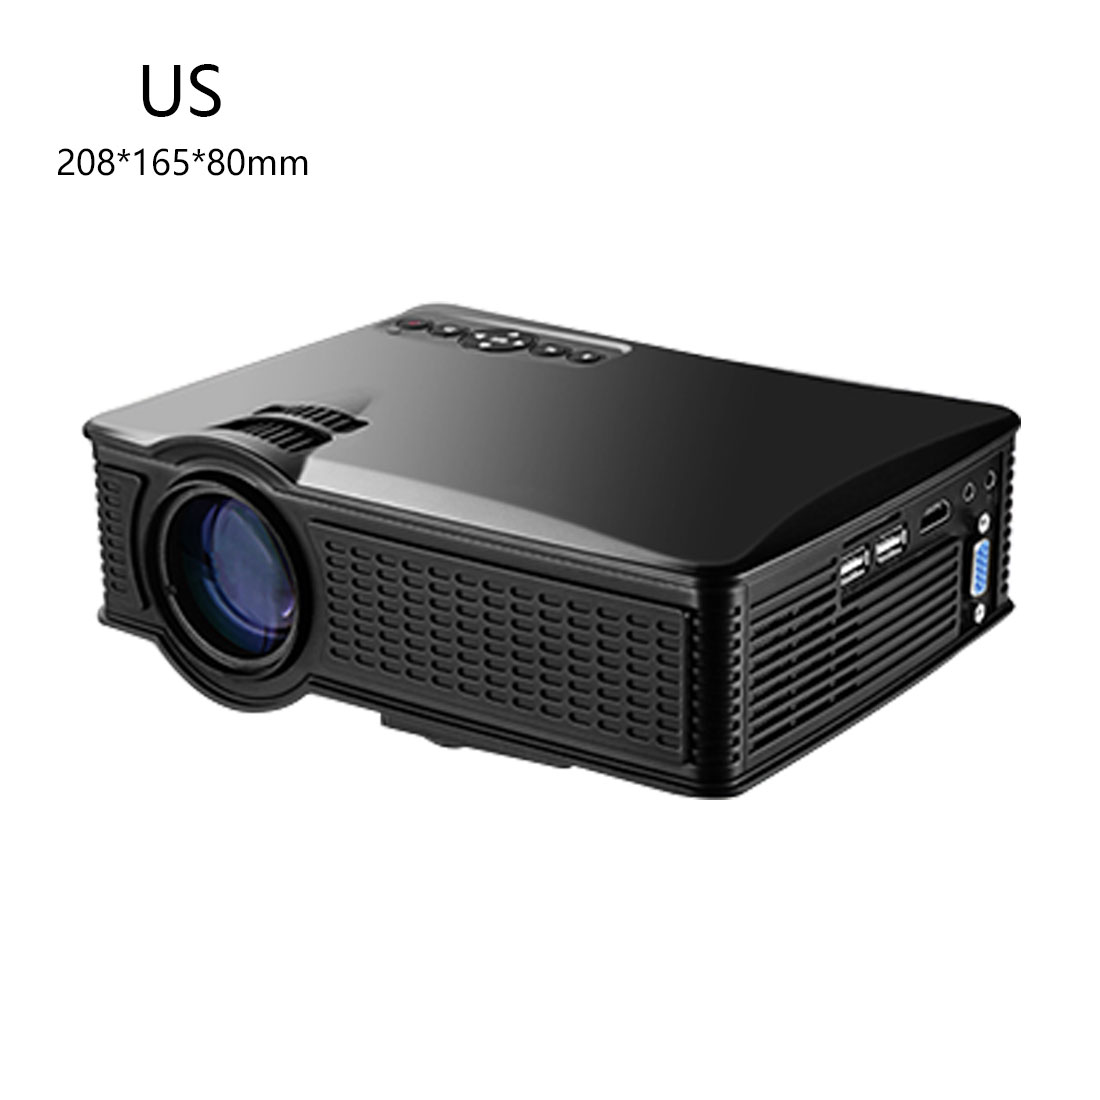 centechia US Plug Hot Sale LY40 LCD Projector 800X480 Support 1080P With HDMI USB AV SD Input For Children Education самокаты disney самокат трехколесный disney холодное сердце